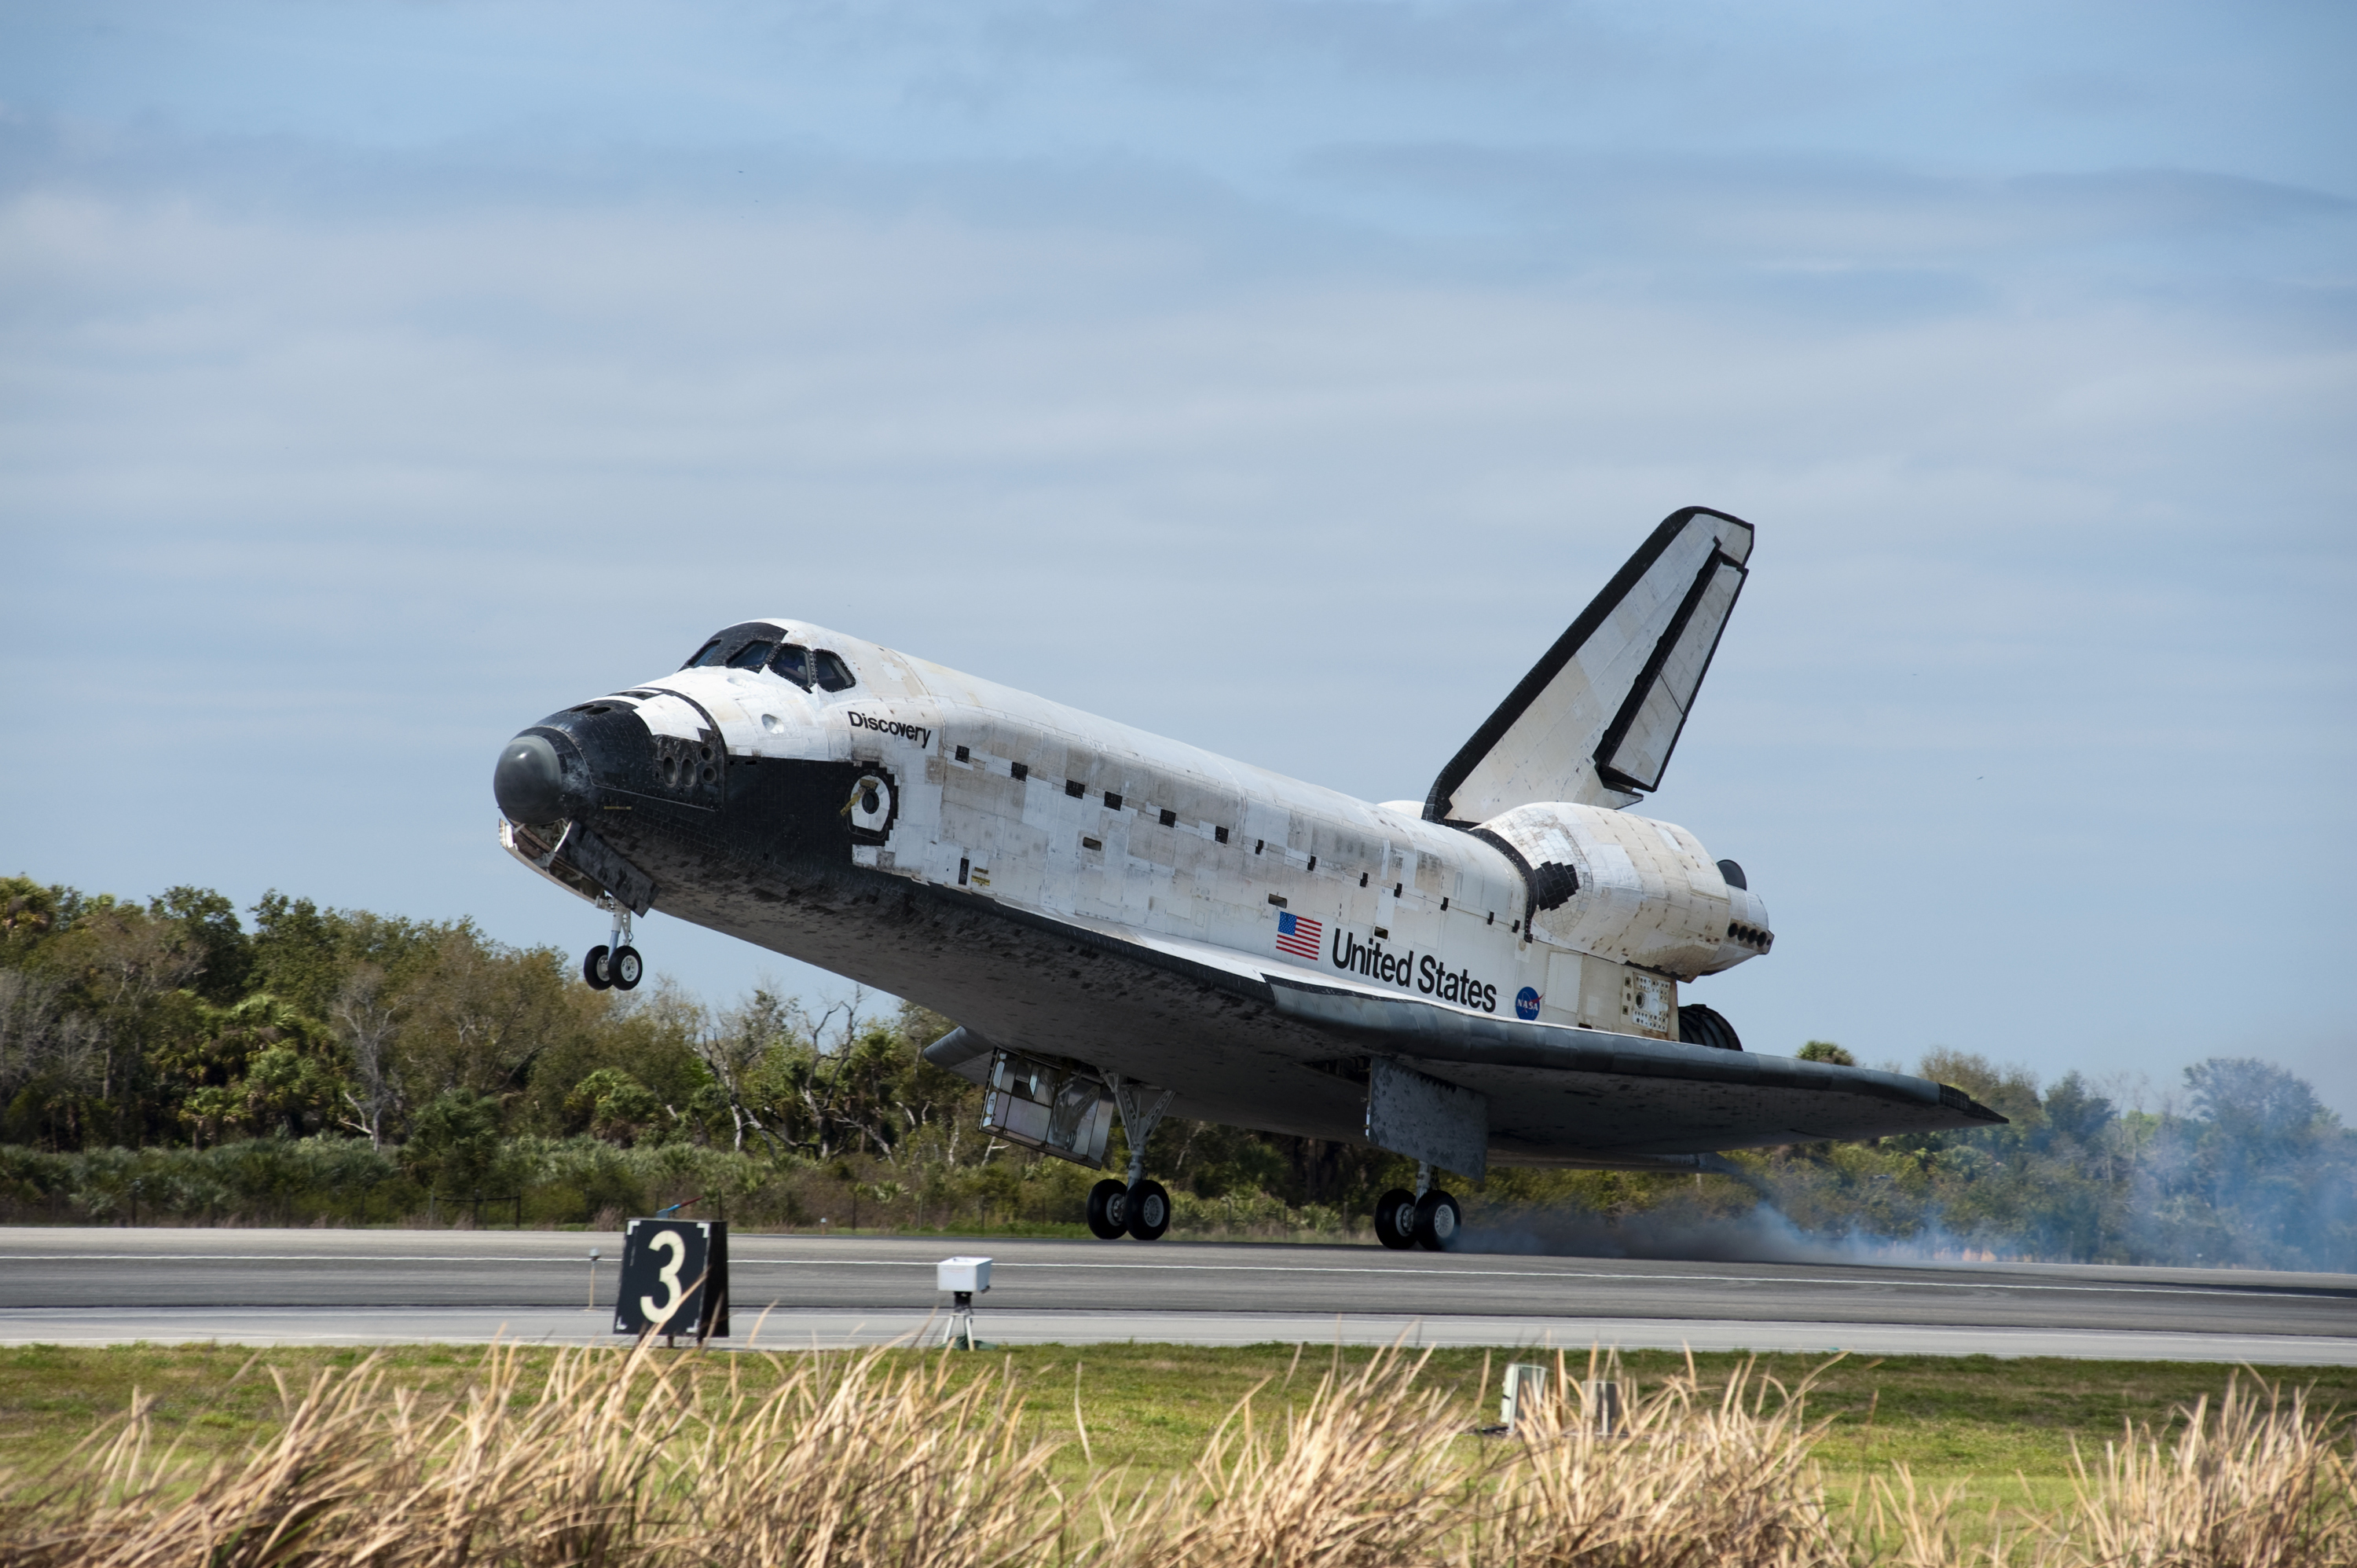 space shuttle landing apk - photo #18